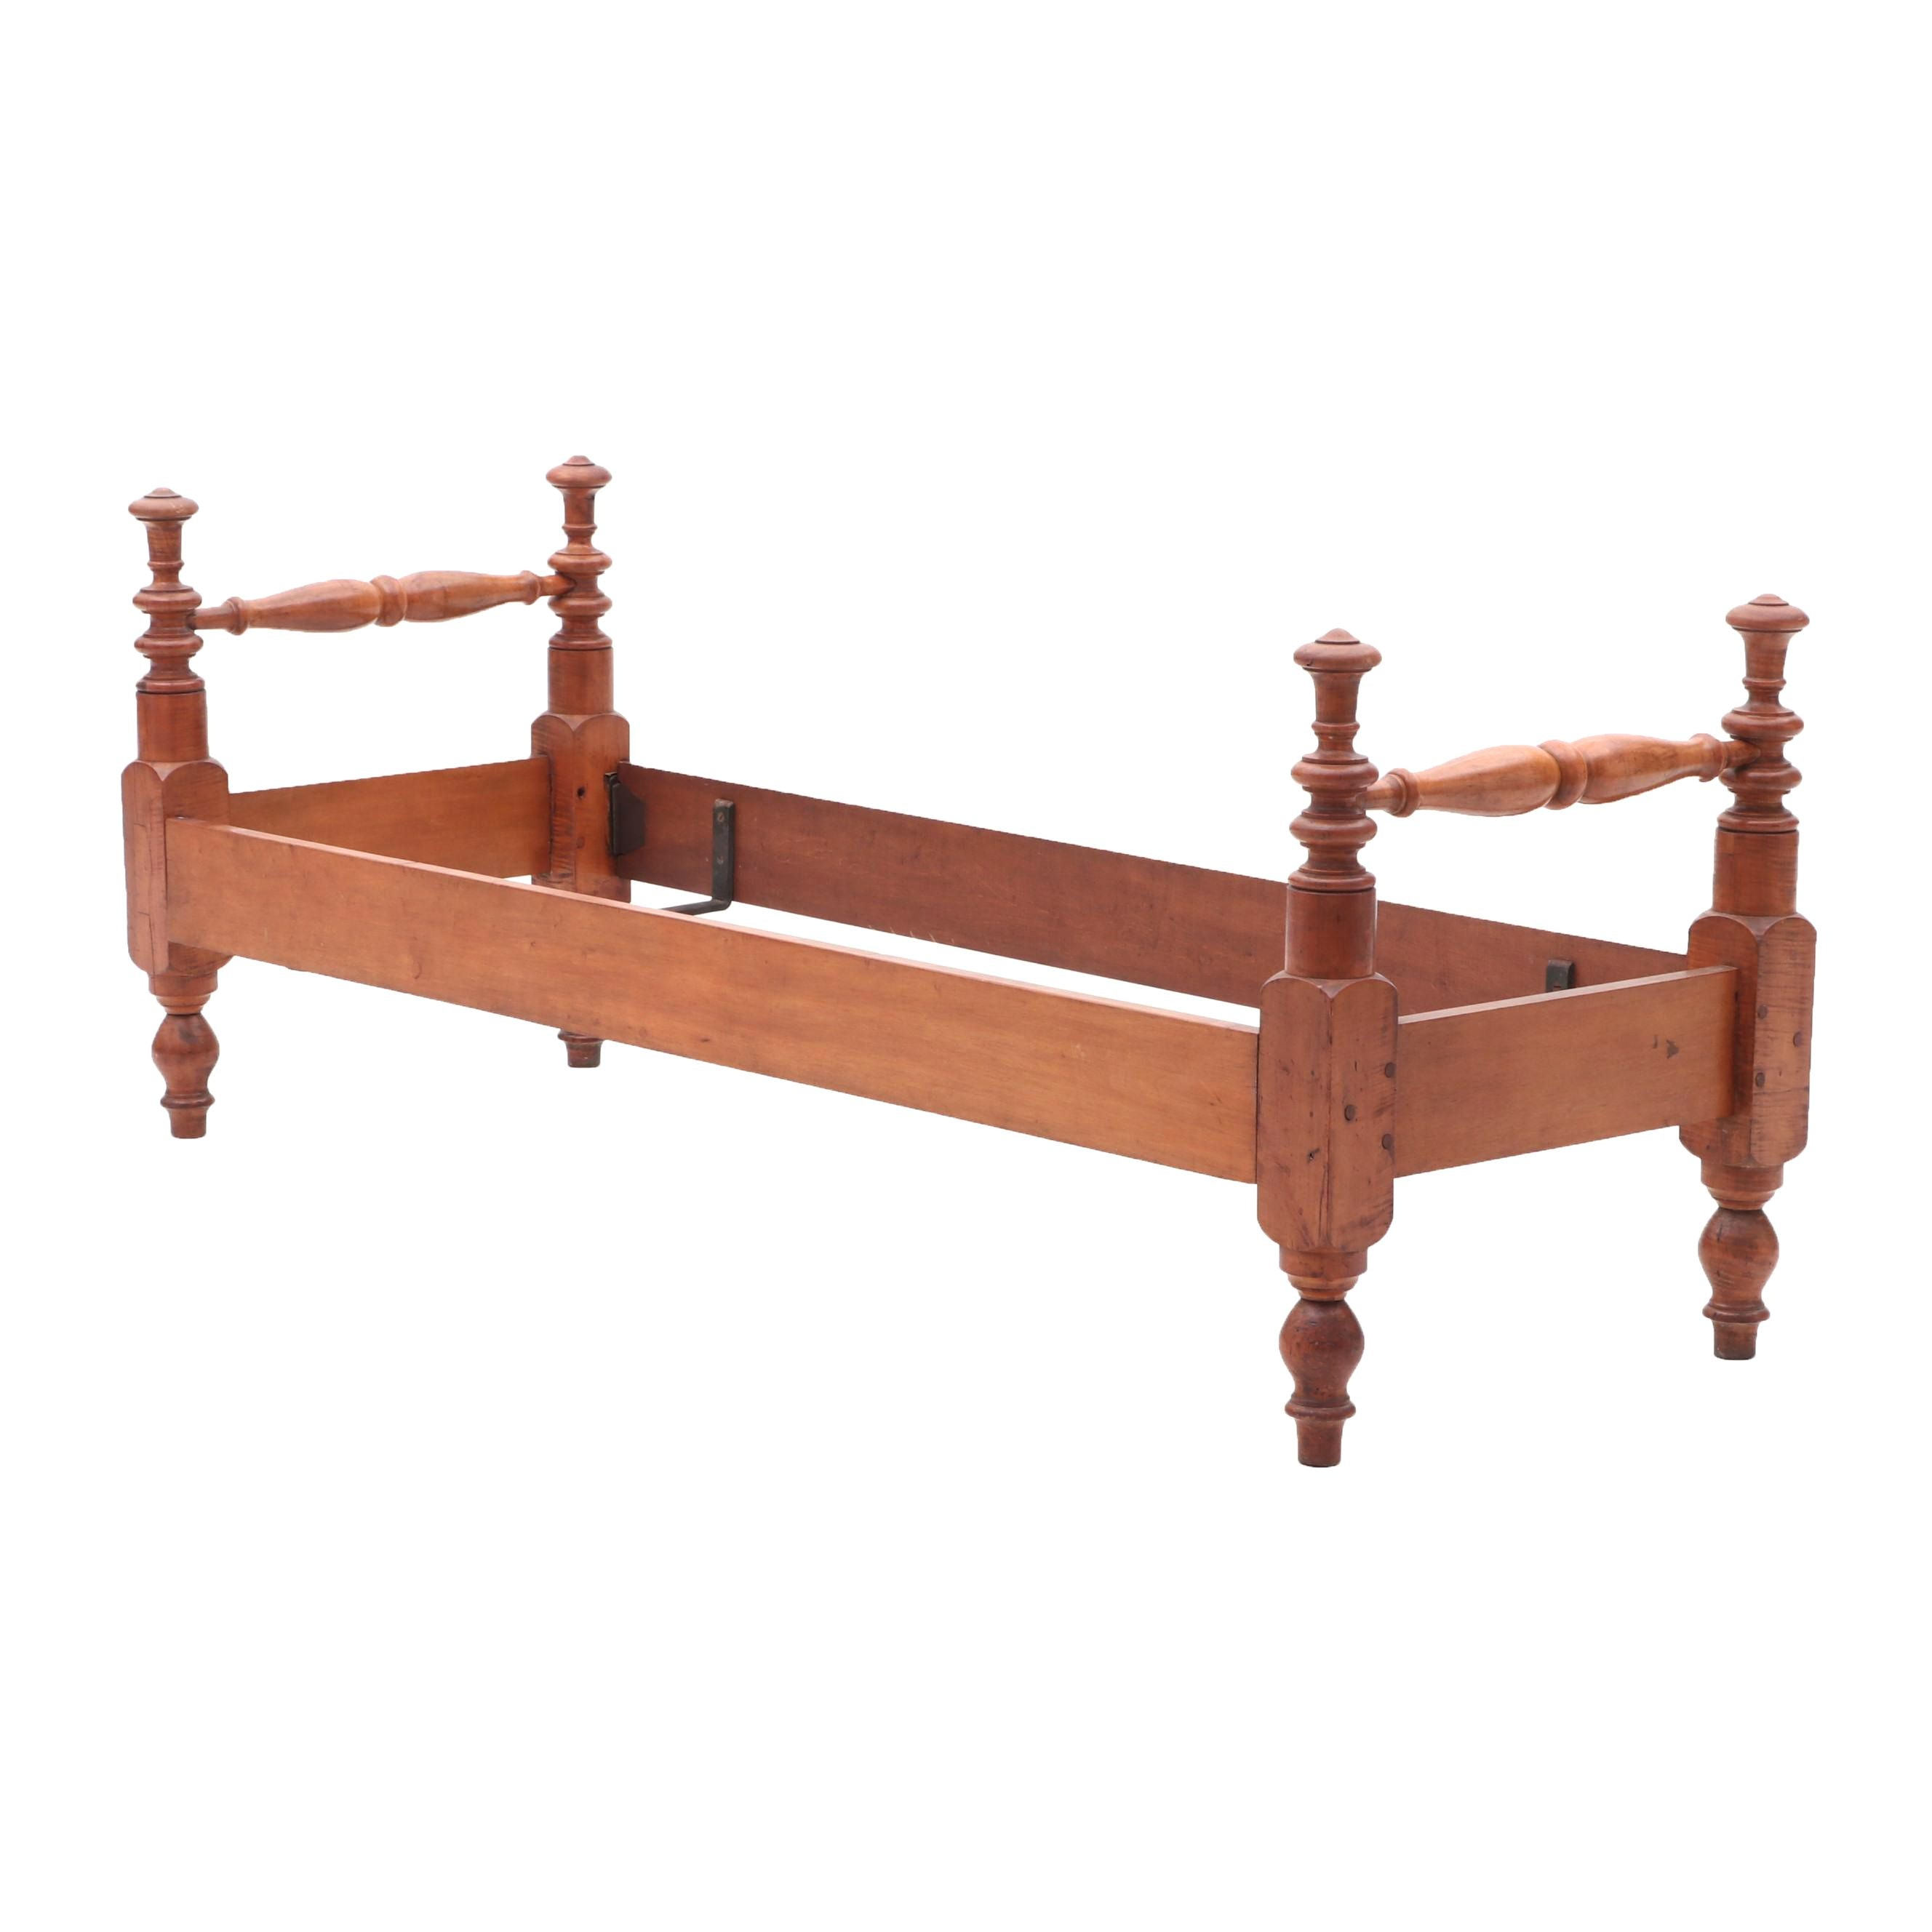 Antique Curly Maple Day Bed with Rails